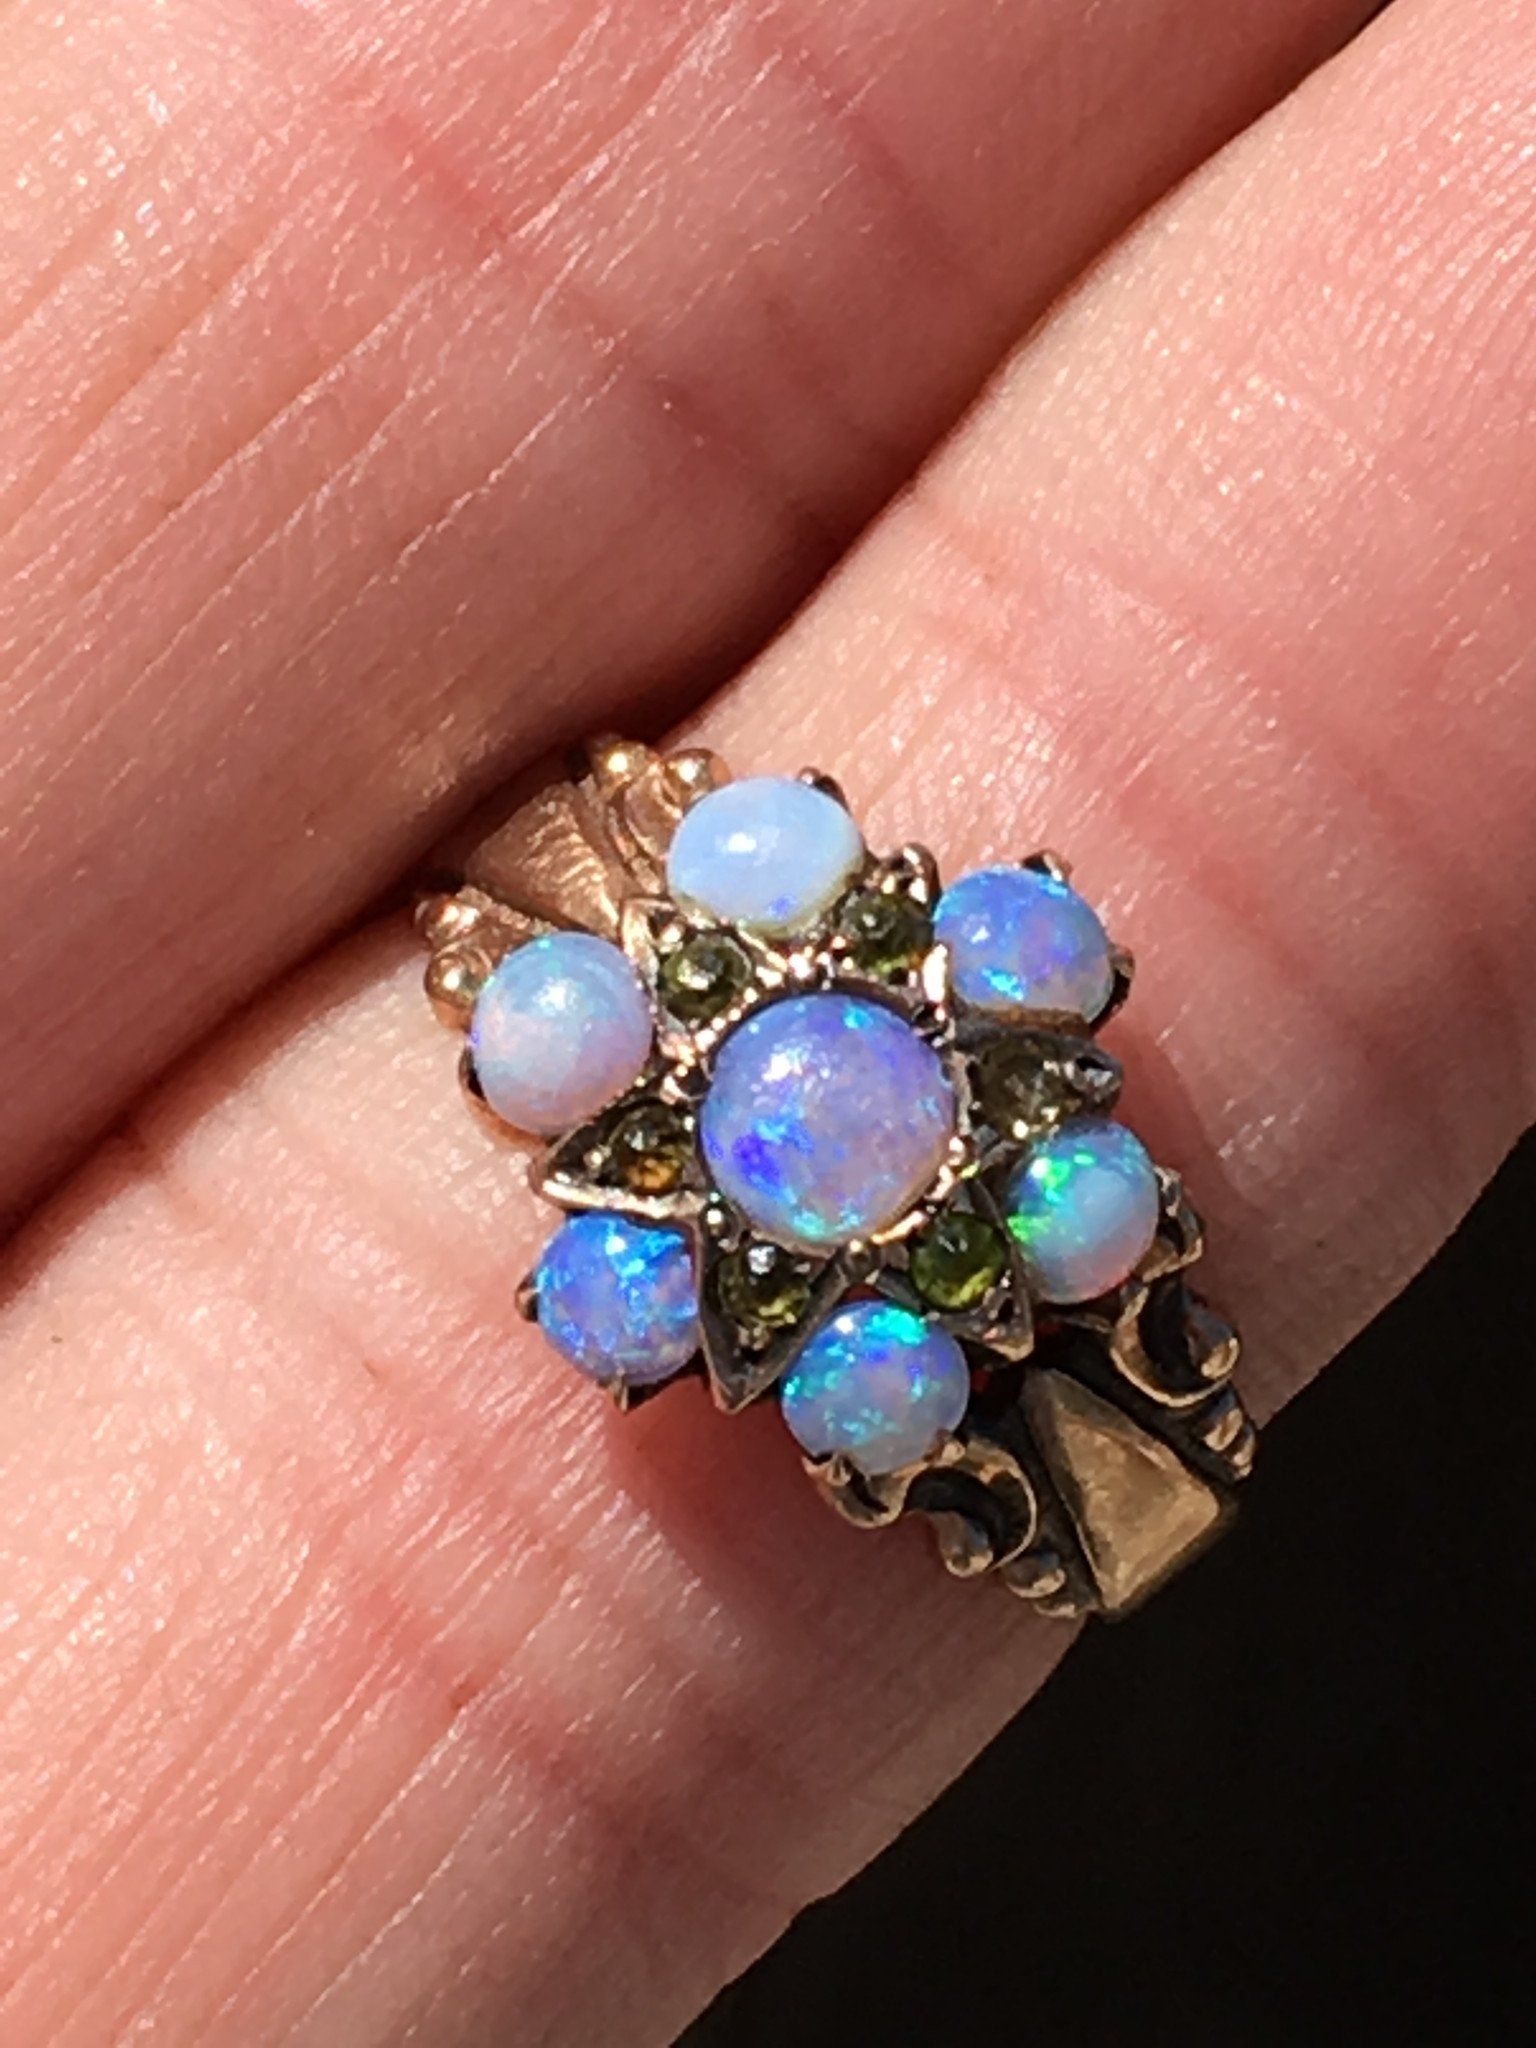 Opal Ring Victorian Era 10K Gold Yourgreatfinds